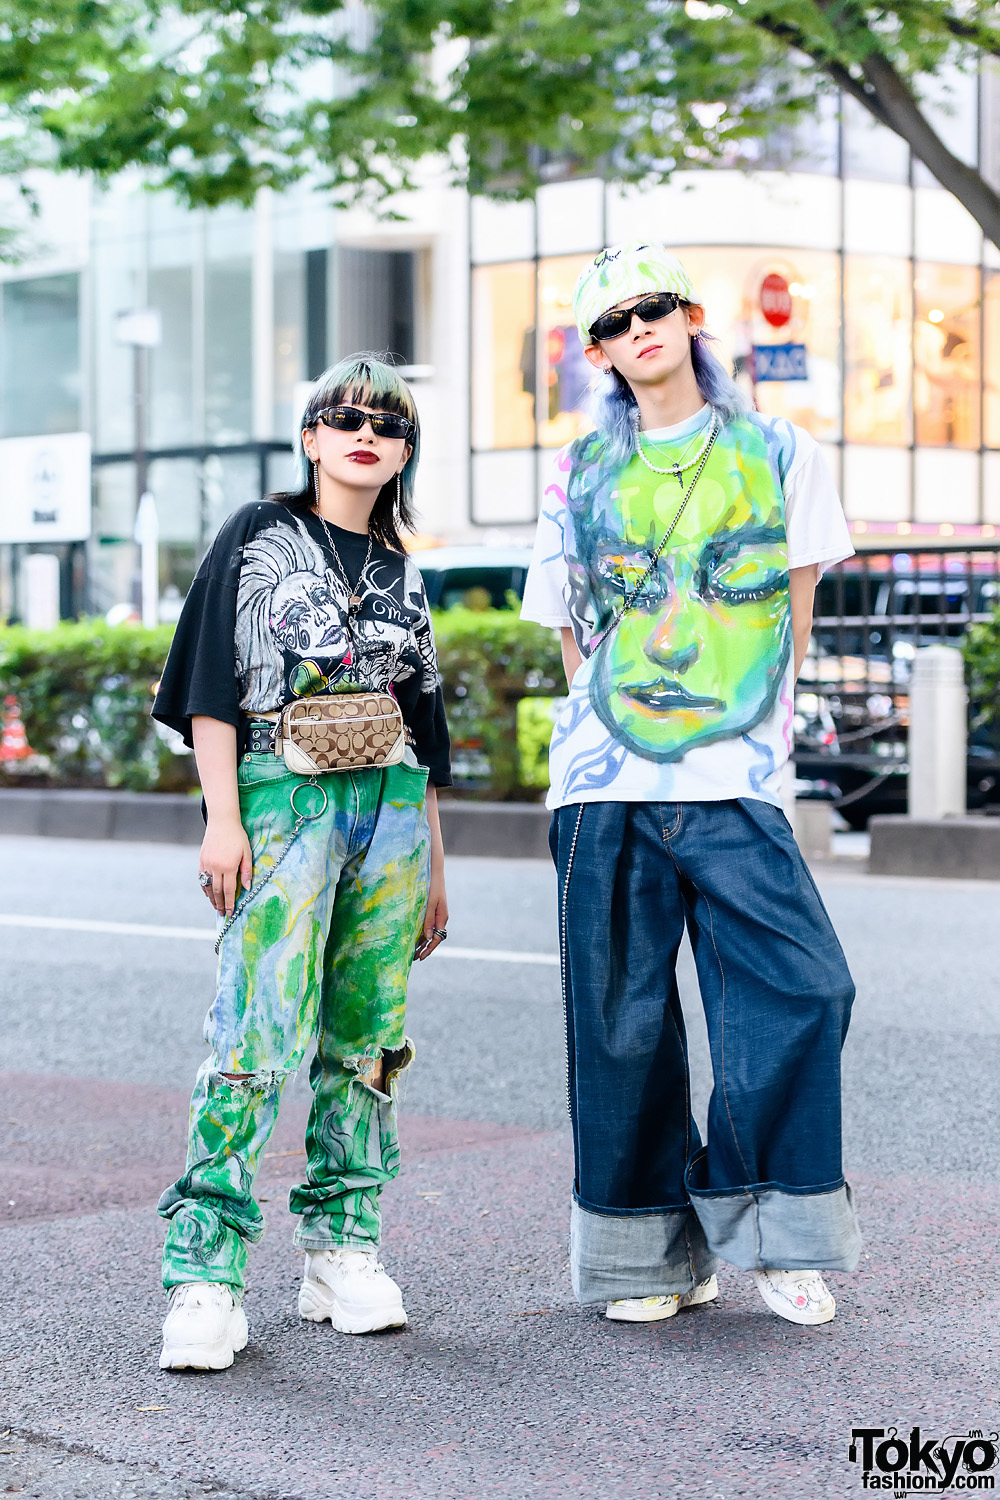 Mind Infection Painted Tokyo Street Styles w/ M.Y.O.B. Wide Leg Pants, Glomesh Bag, Buffalo London & Nike x Painted Sneakers